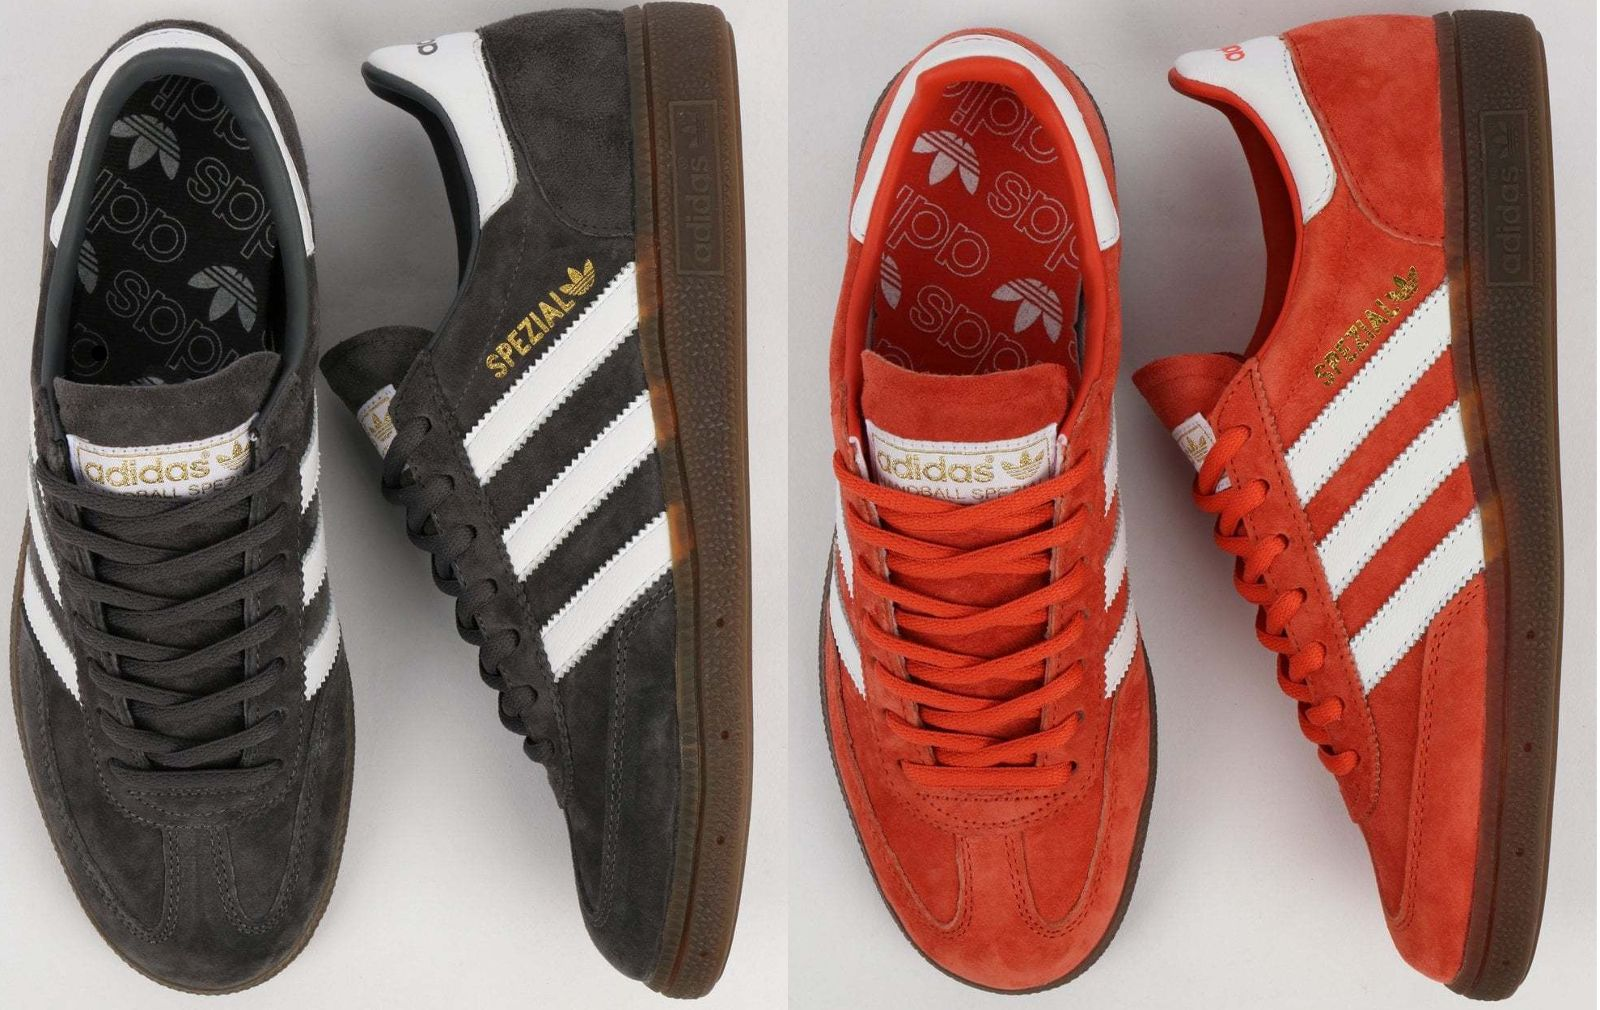 2019 new Spezial colors just out! | Adidas sneakers